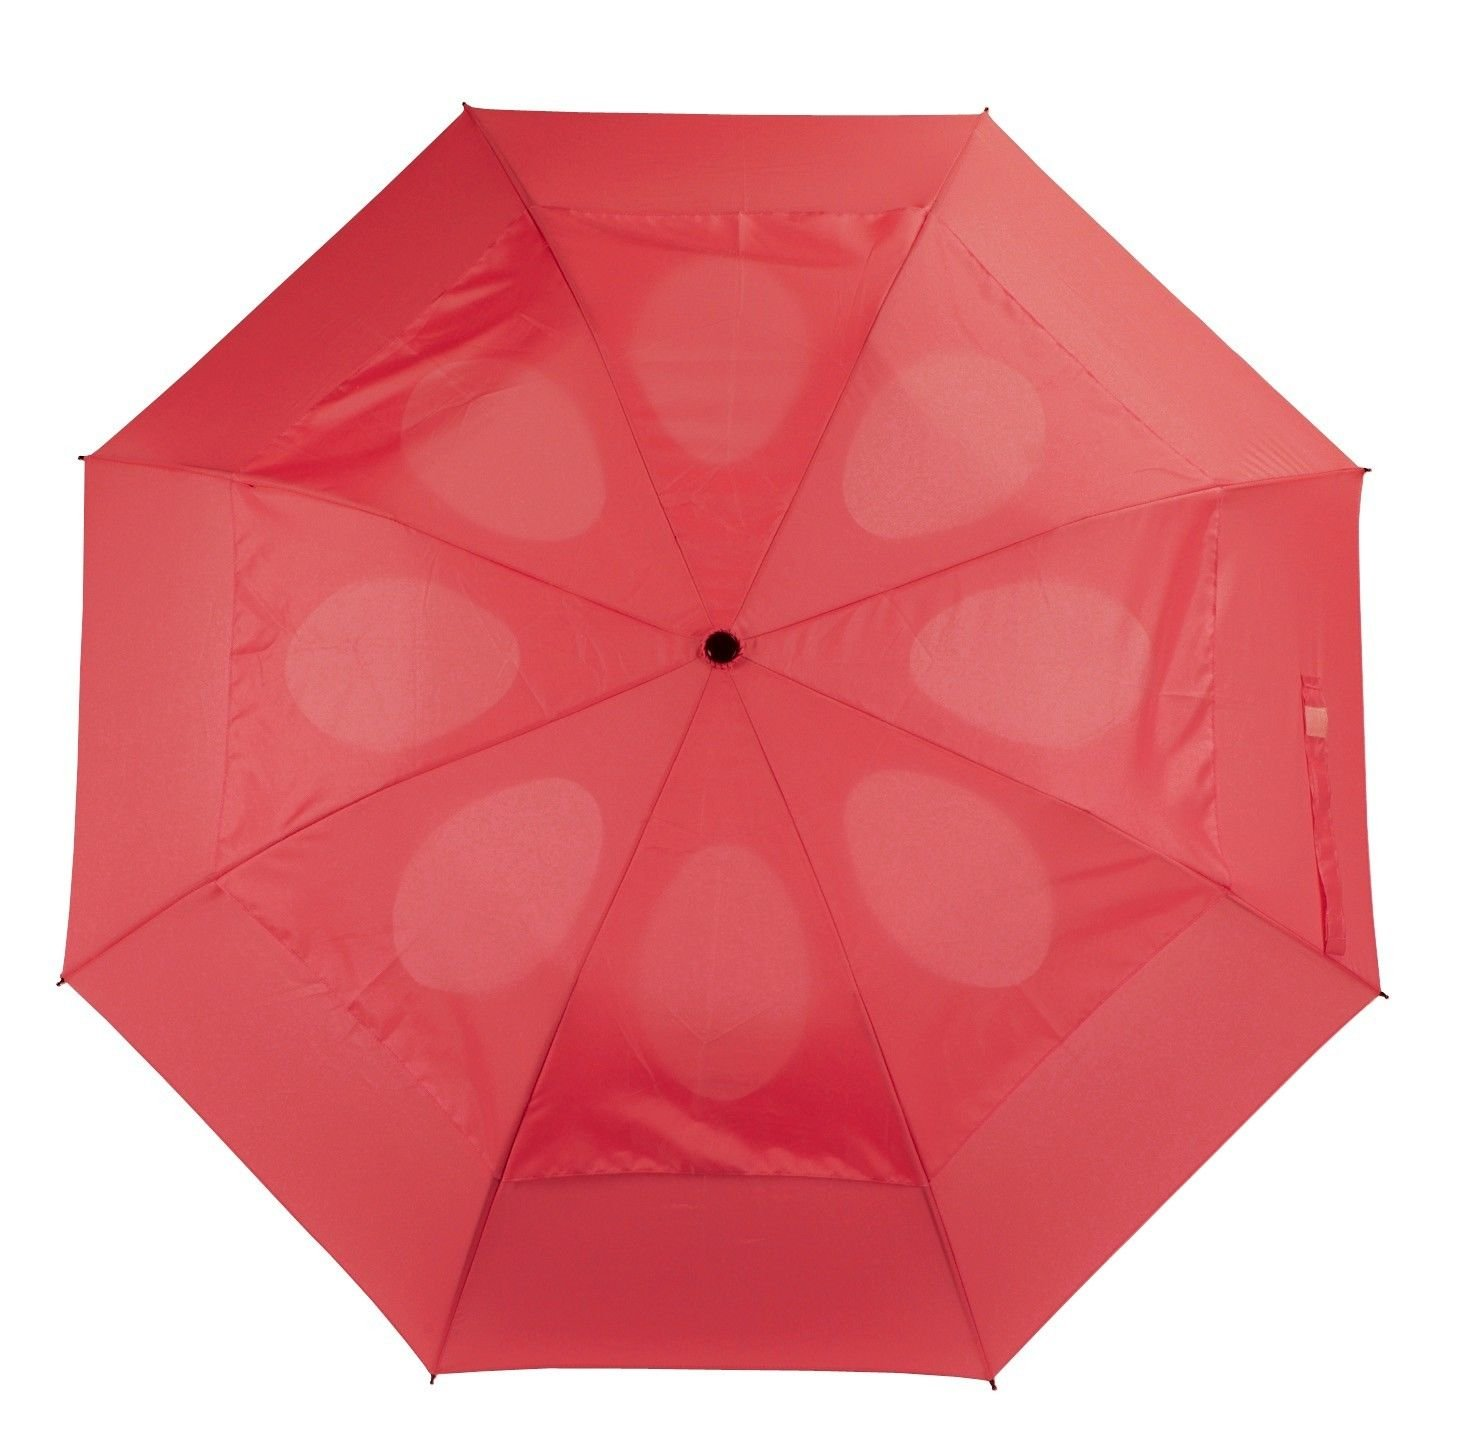 Windproof Umbrella Wind Resistant Folding Double Vented Rain Canopy with Strong Open Close (Black)